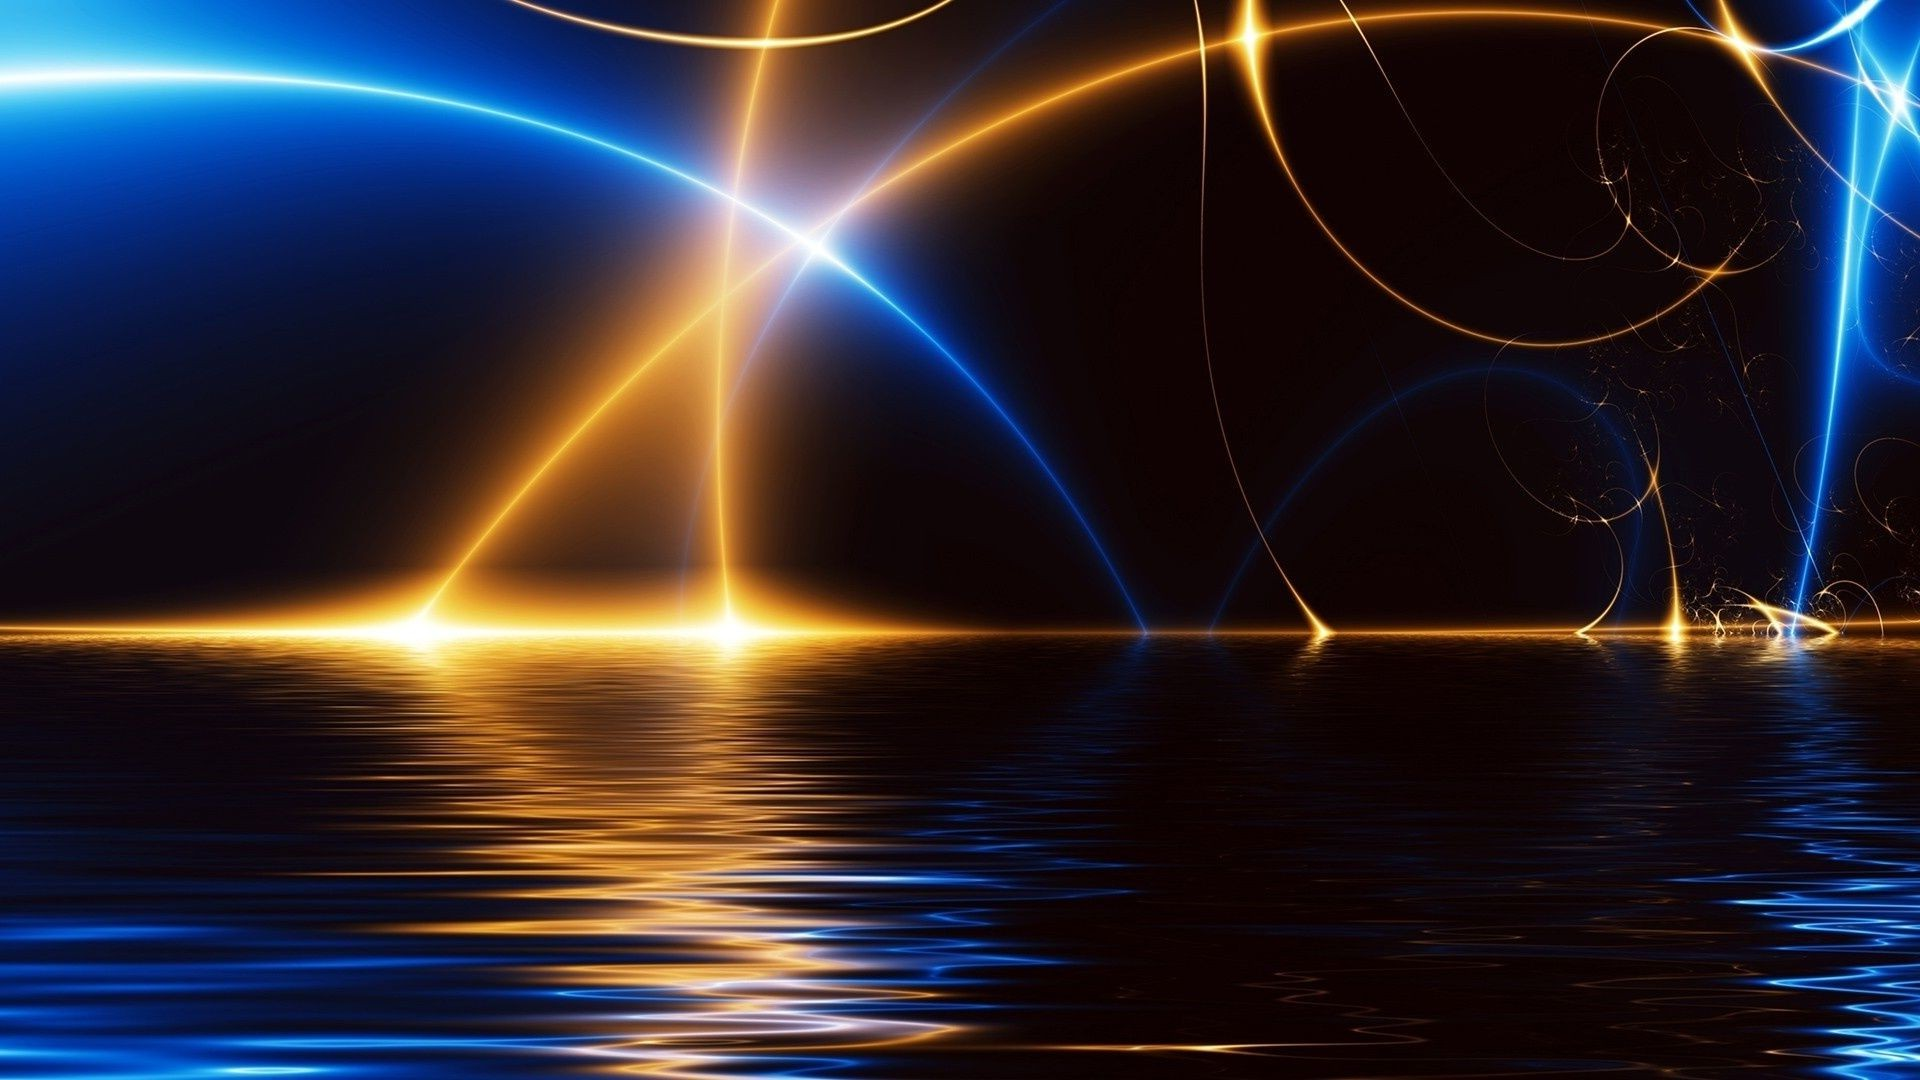 3d Water Blue Orange Light Arc Lighting Android Wallpapers